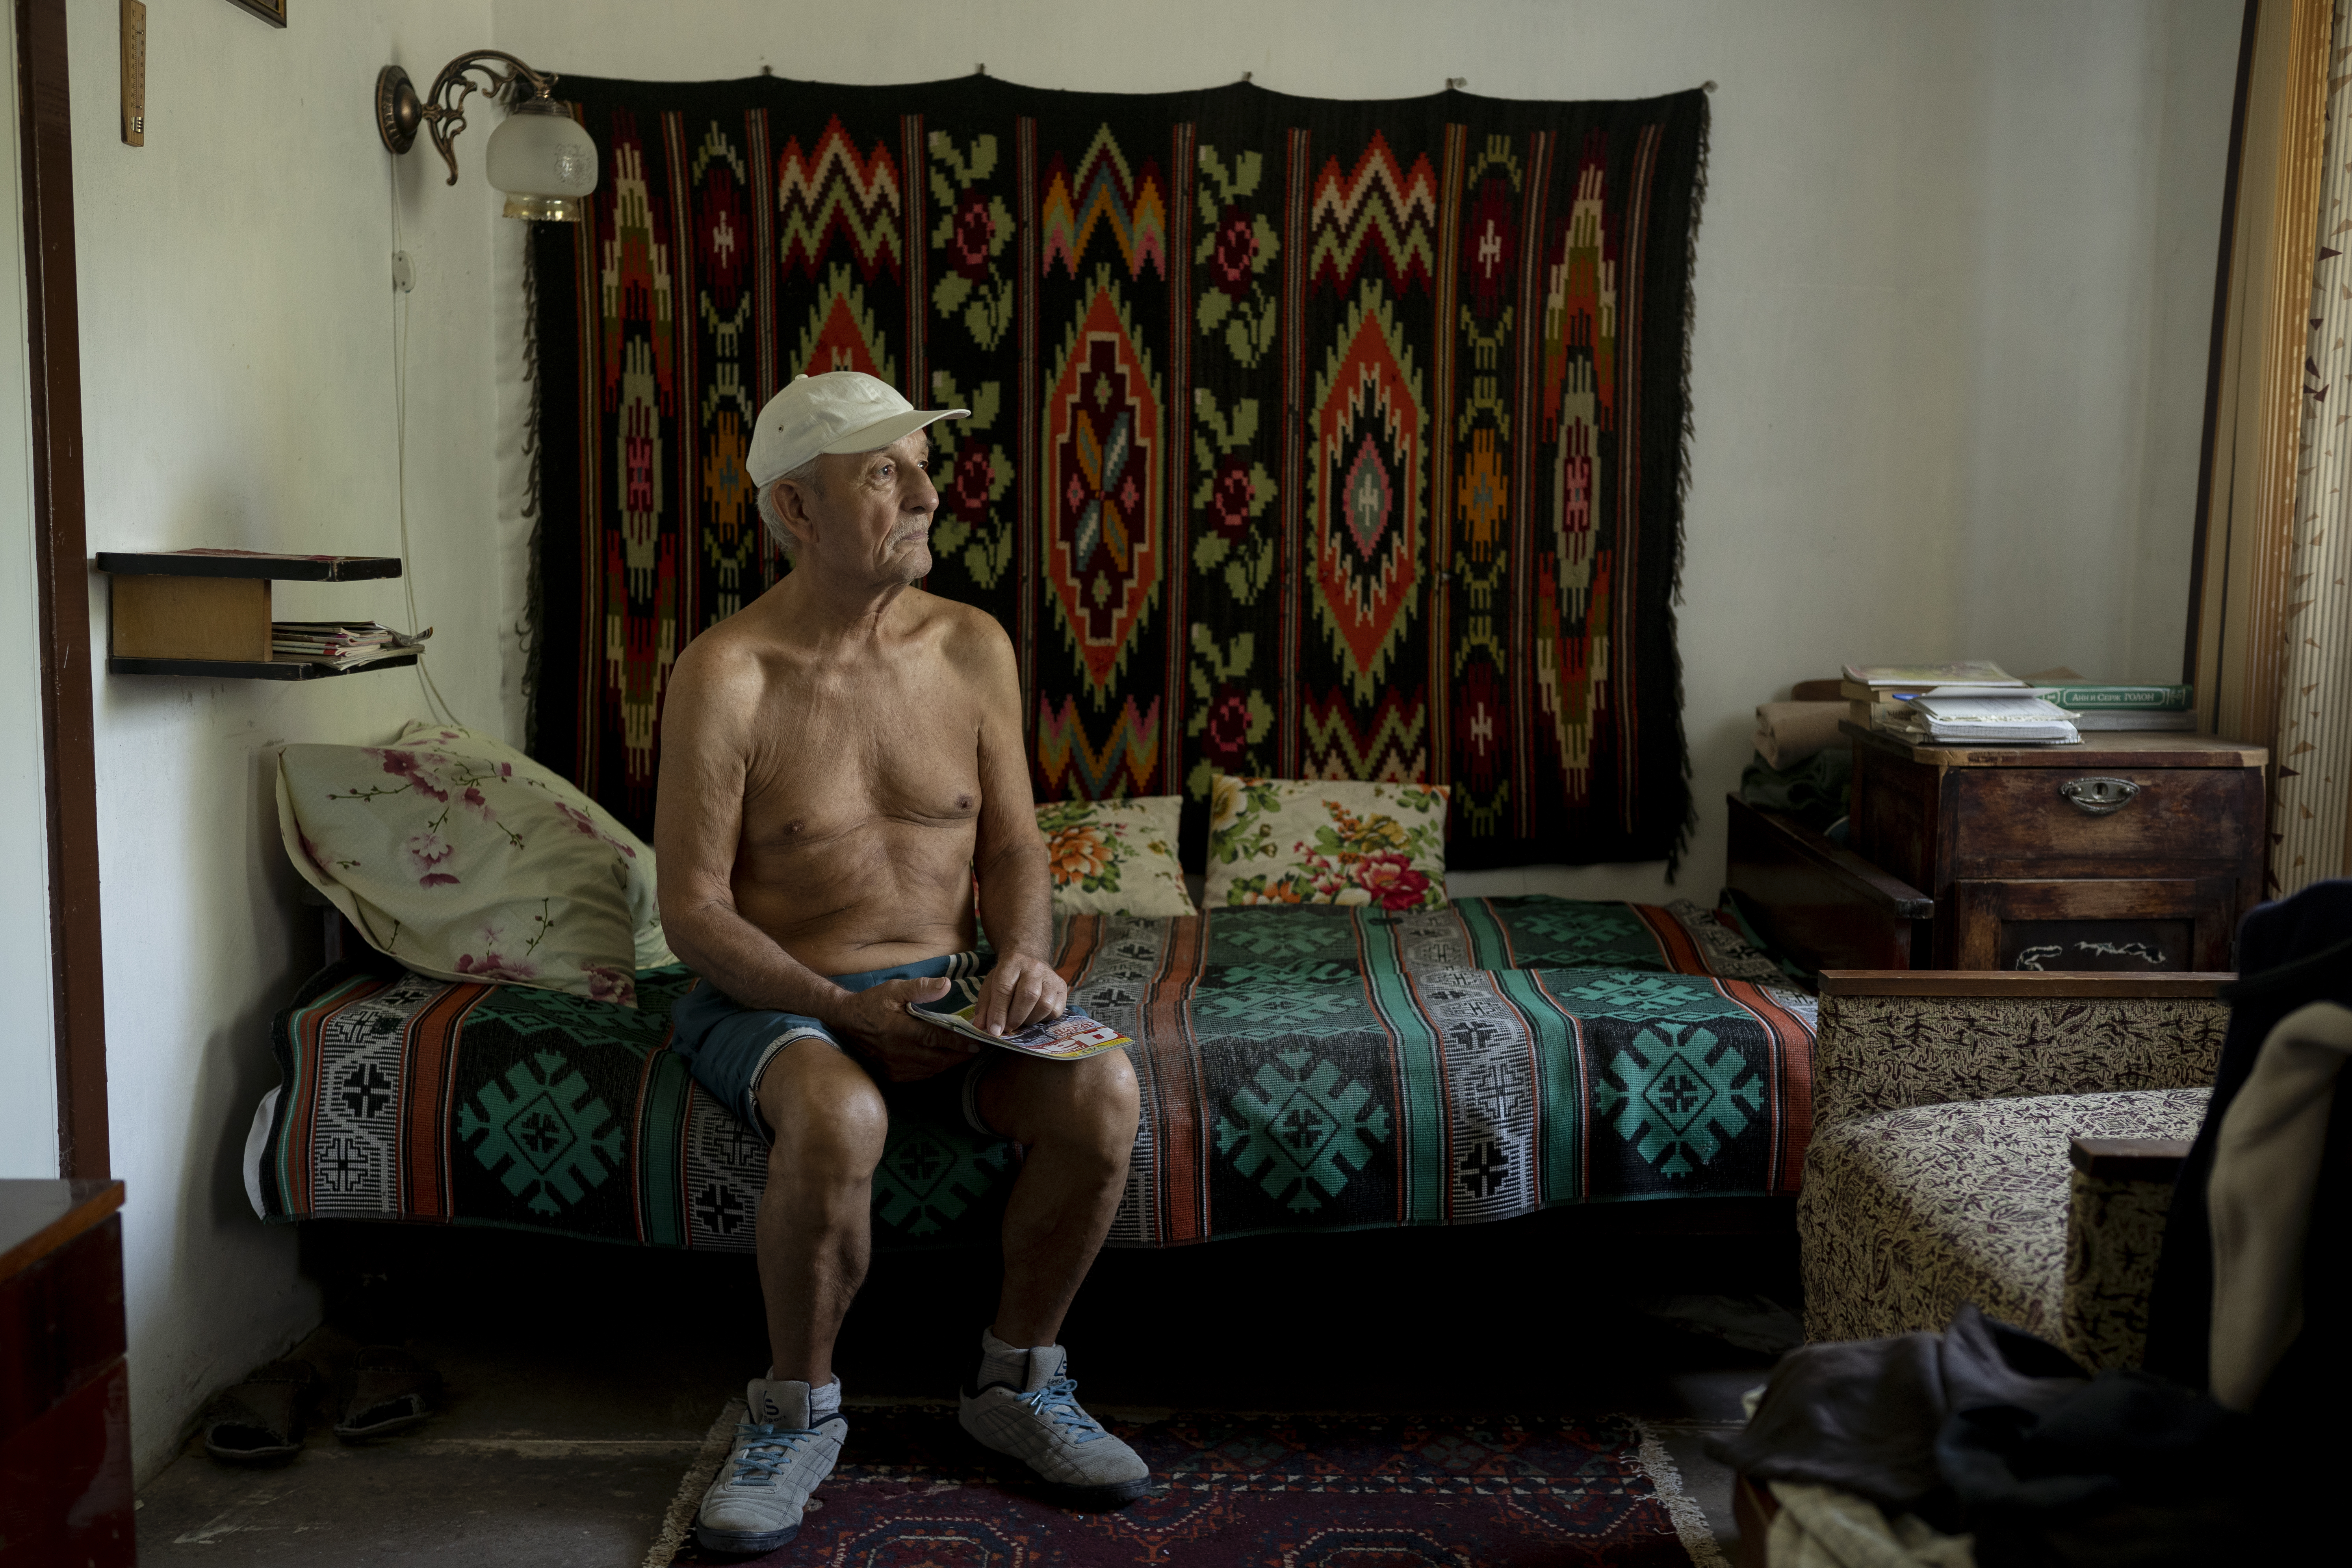 Viktor rests at his dacha after a peaceful morning enjoying fresh fruits and vegetables with his wife Lubov (AtlasNetwork.org Photo/Bernat Parera).